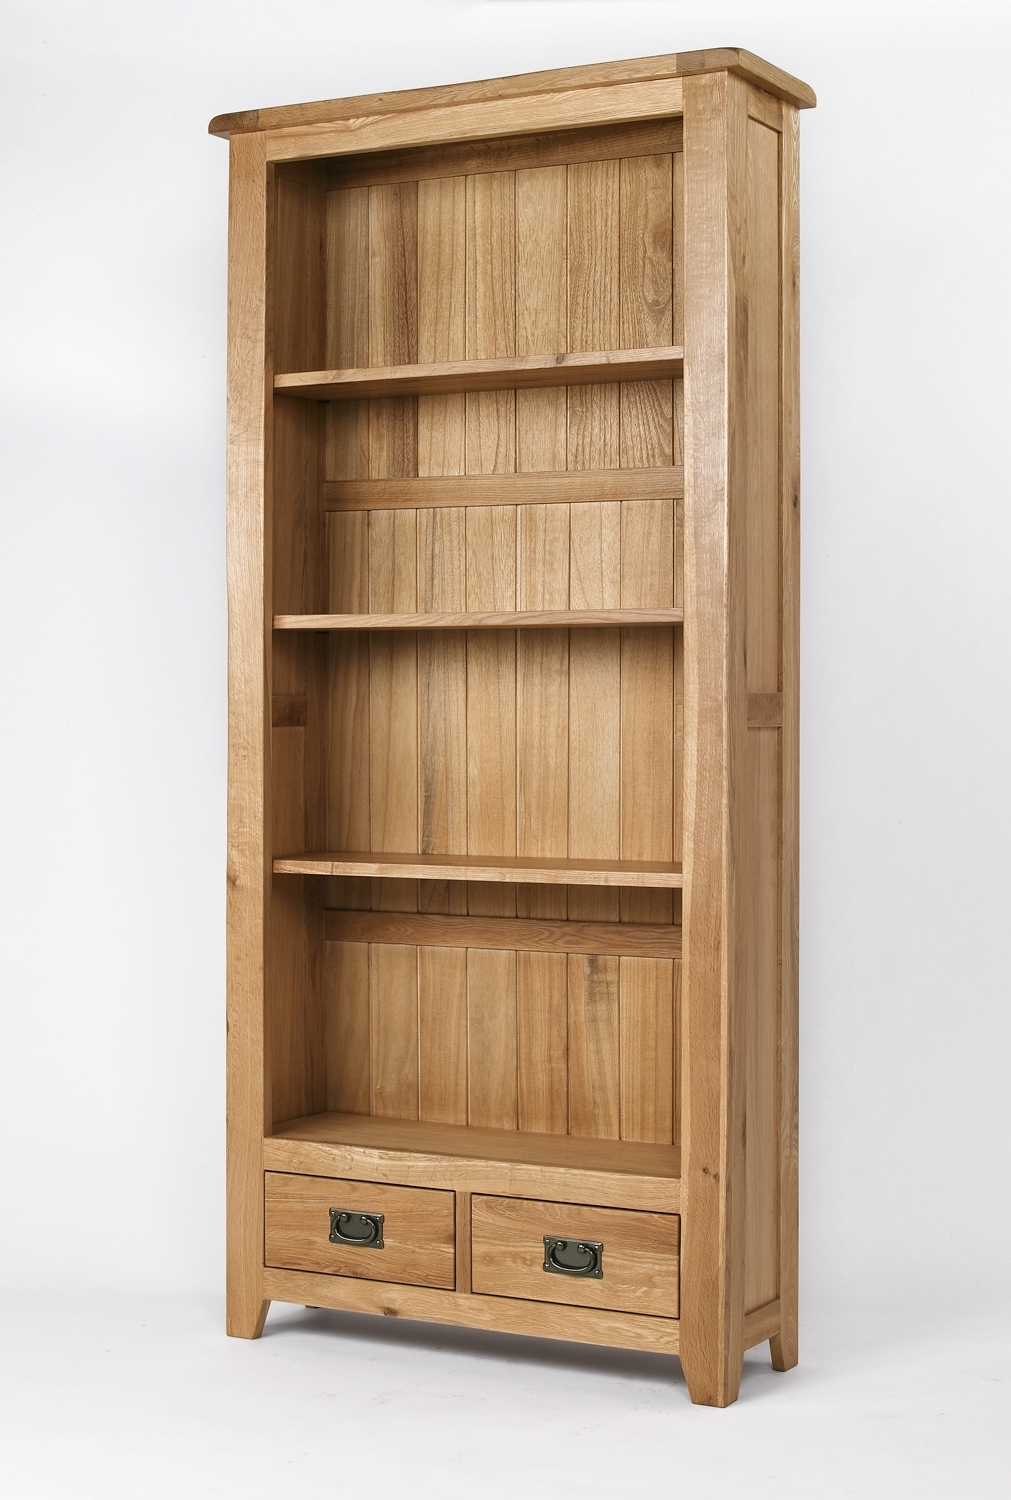 Wooden Bookcases Within Most Recently Released Bookcases Ideas: Stylish Wooden Bookcase For Living Room Bookcases (View 2 of 15)